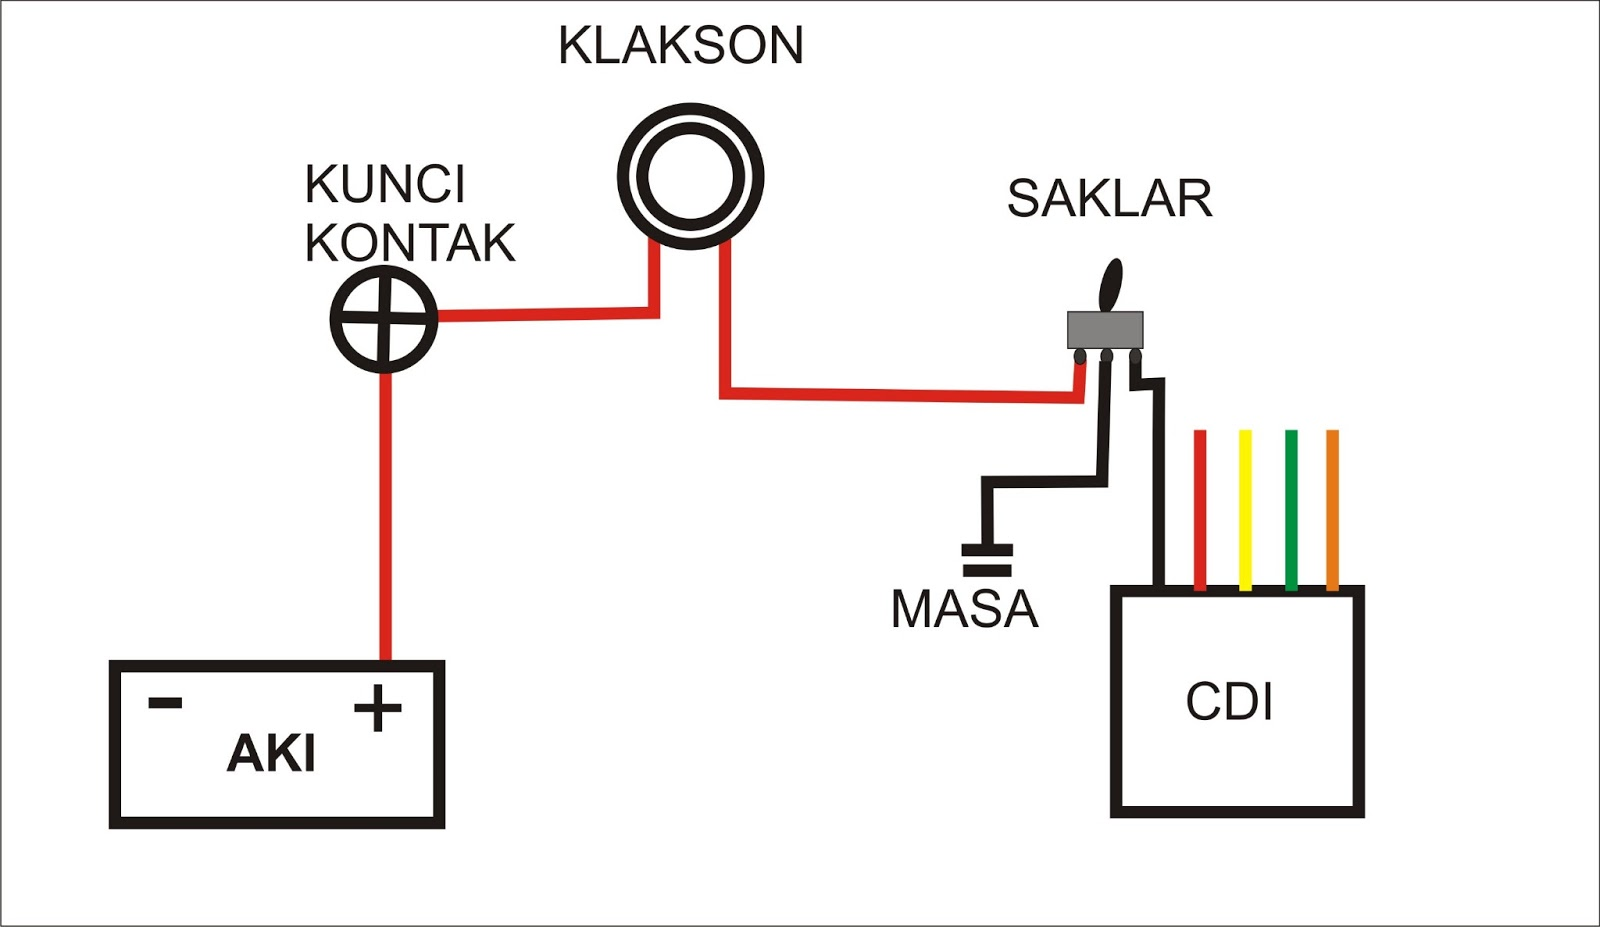 Diagram Wiring Diagram Klakson Full Version Hd Quality